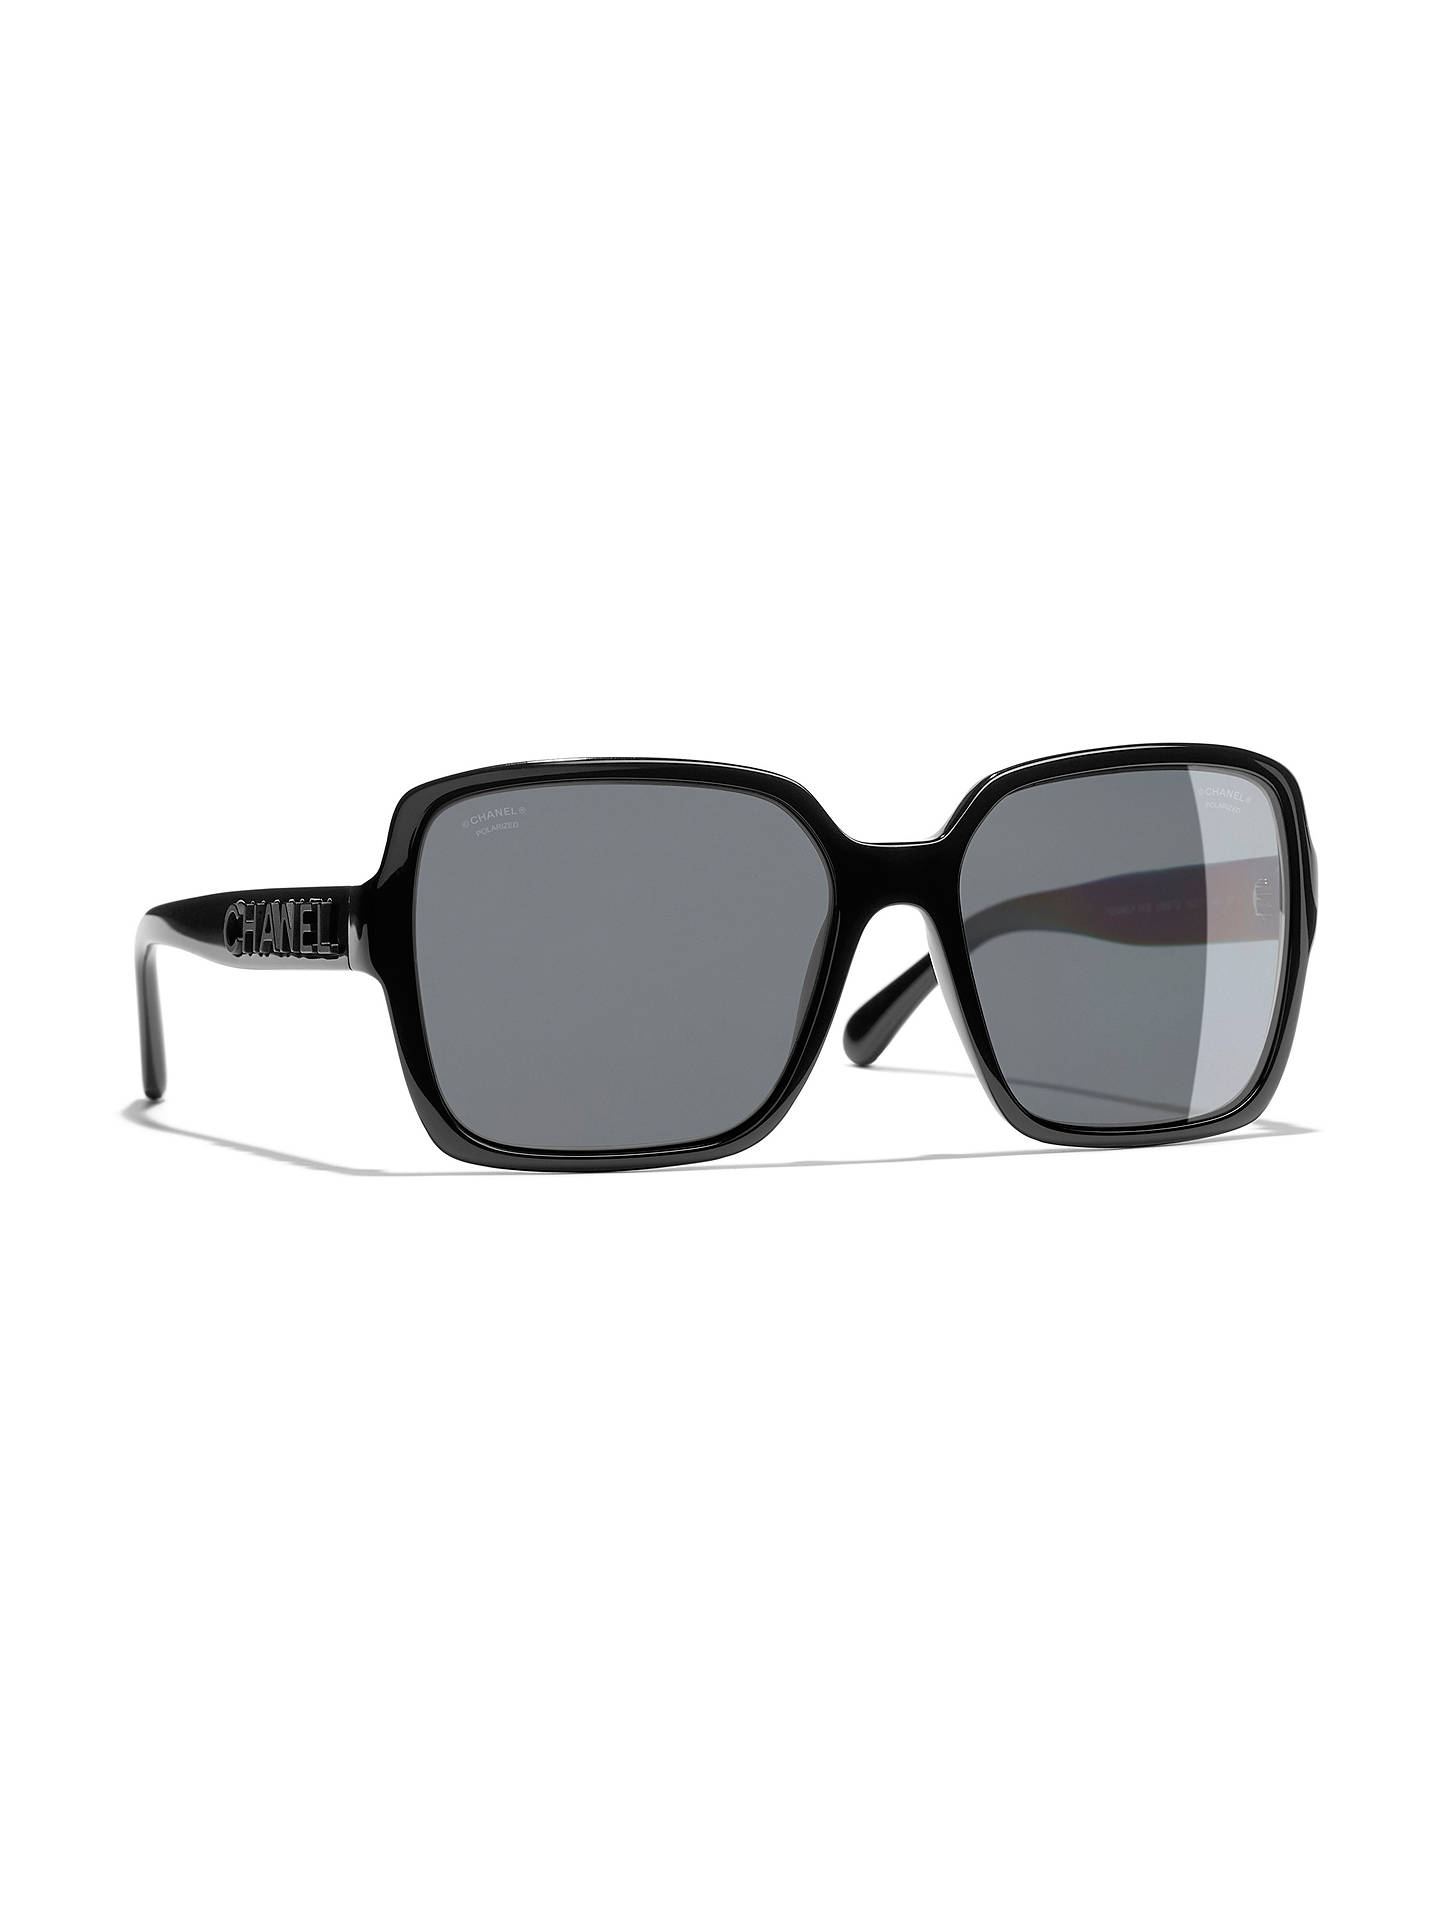 237d0468f55d6 Buy CHANEL Rectangular Sunglasses CH5408 Black Grey Online at johnlewis.com  ...